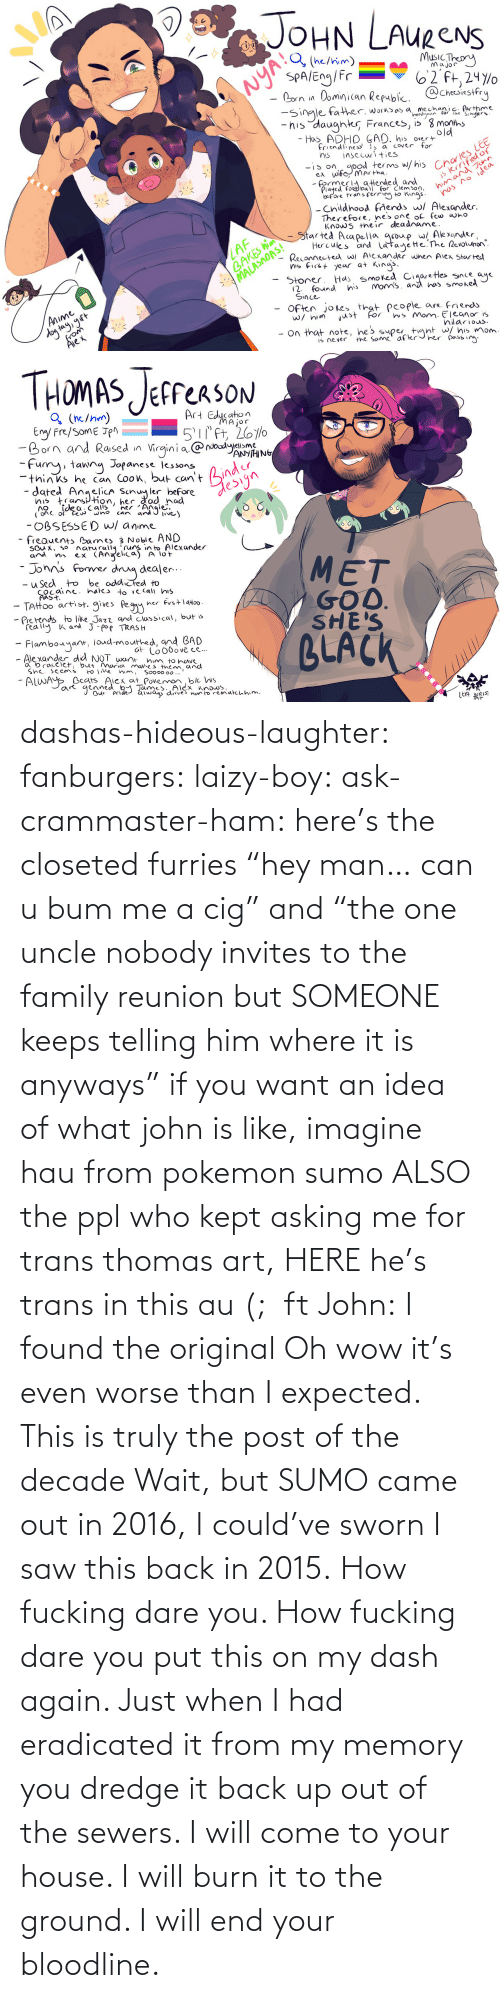 "reunion: dashas-hideous-laughter:  fanburgers:   laizy-boy:   ask-crammaster-ham:   here's the closeted furries ""hey man… can u bum me a cig"" and ""the one uncle nobody invites to the family reunion but SOMEONE keeps telling him where it is anyways""   if you want an idea of what john is like, imagine hau from pokemon sumo ALSO the ppl who kept asking me for trans thomas art, HERE he's trans in this au (;  ft John:    I found the original     Oh wow it's even worse than I expected. This is truly the post of the decade    Wait, but SUMO came out in 2016, I could've sworn I saw this back in 2015.    How fucking dare you. How fucking dare you put this on my dash again. Just when I had eradicated it from my memory you dredge it back up out of the sewers. I will come to your house. I will burn it to the ground. I will end your bloodline."